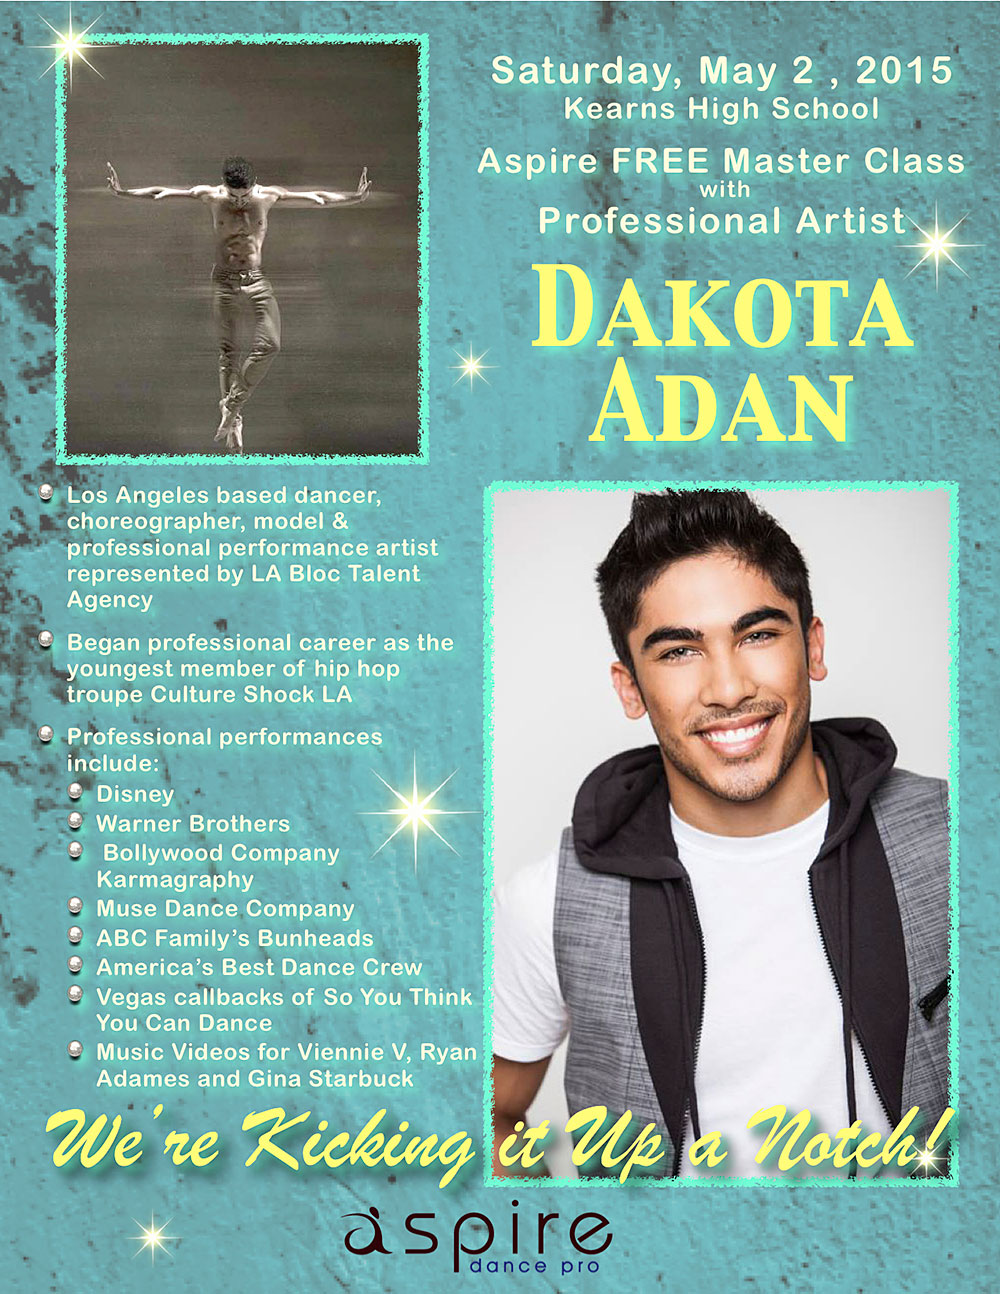 Dakota Adan - Aspire Dance Pro Competitions Masterclass Instructor